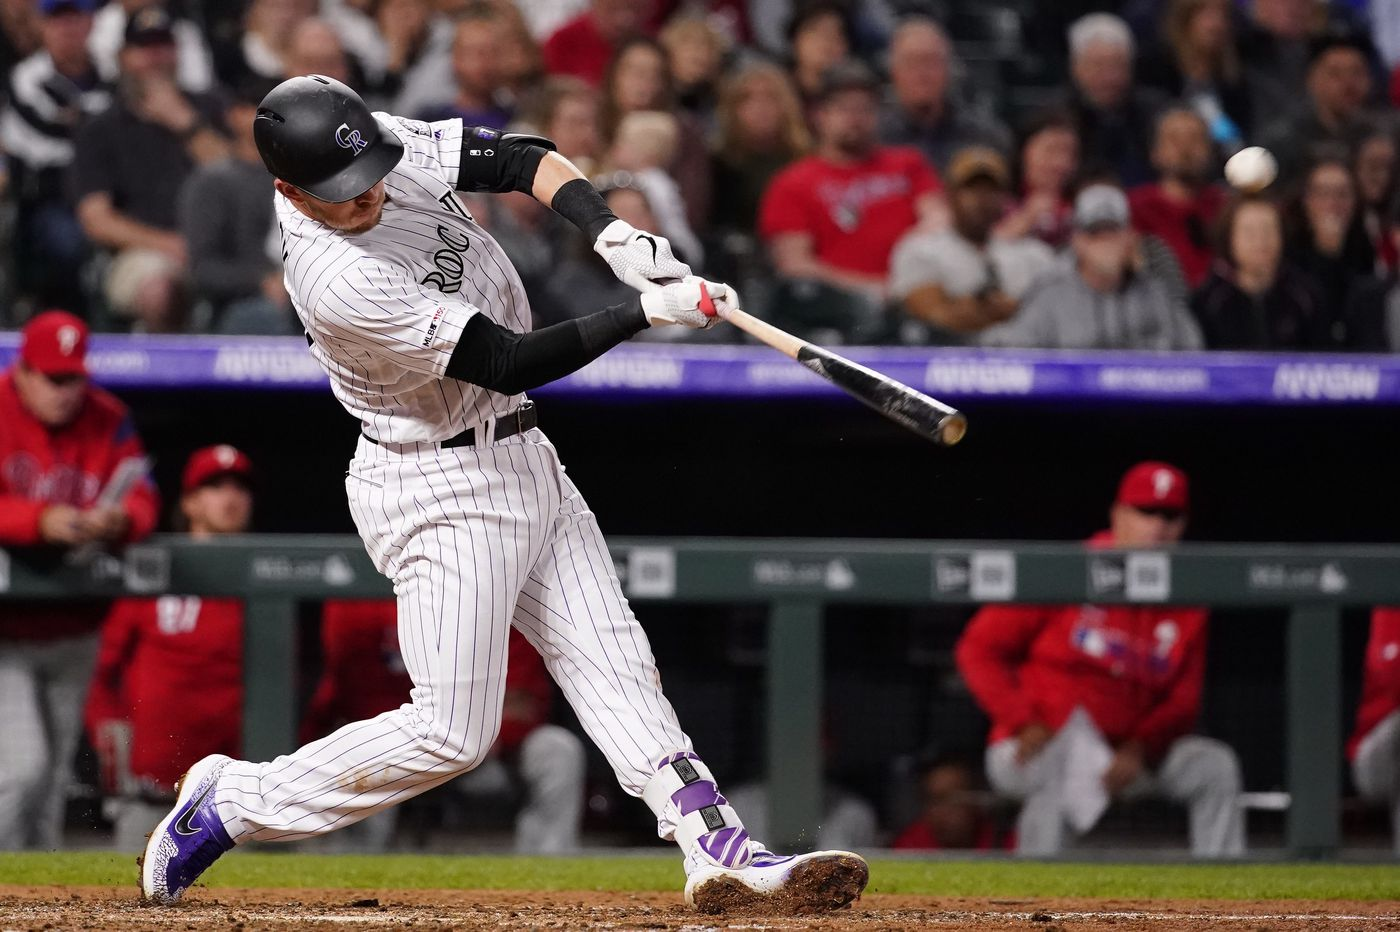 Phillies fall to Rockies on Charlie Blackmon's walk-off home run, lose Scott Kingery and Andrew McCutchen to injuries